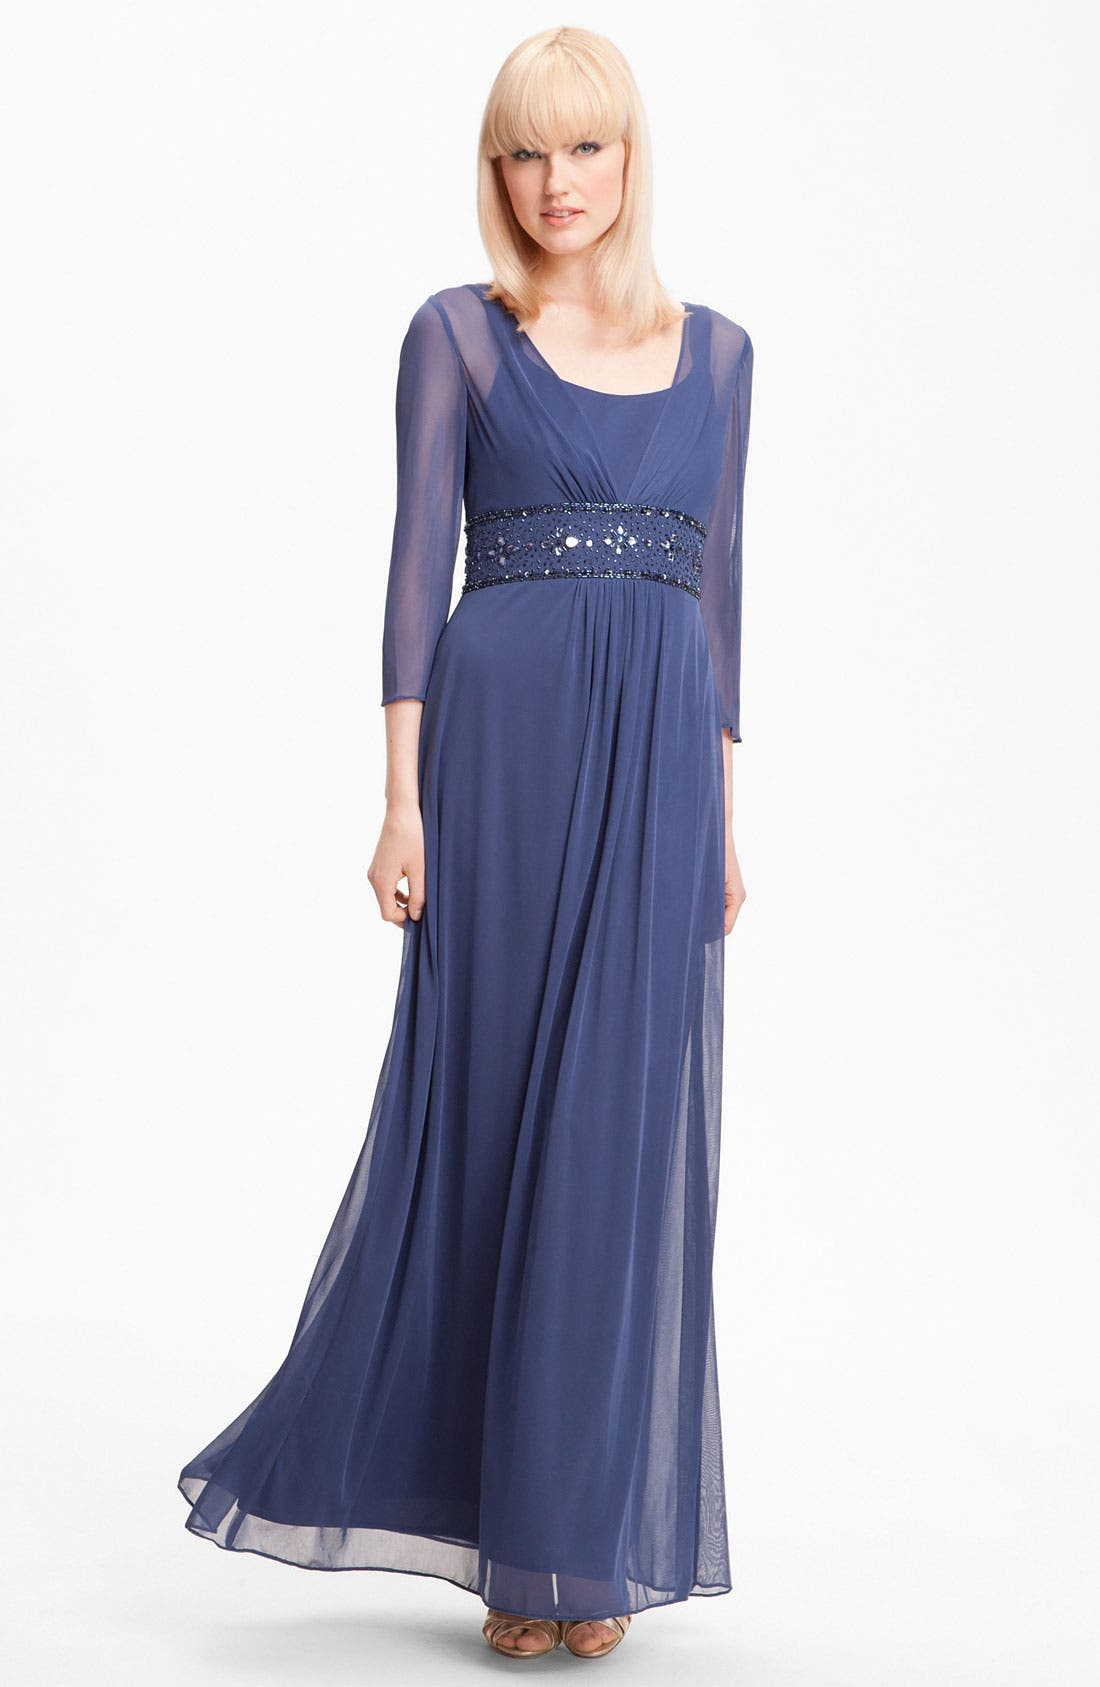 Main Image - Alex Evenings Long Sleeve Bead Waist Mesh Gown (Petite)